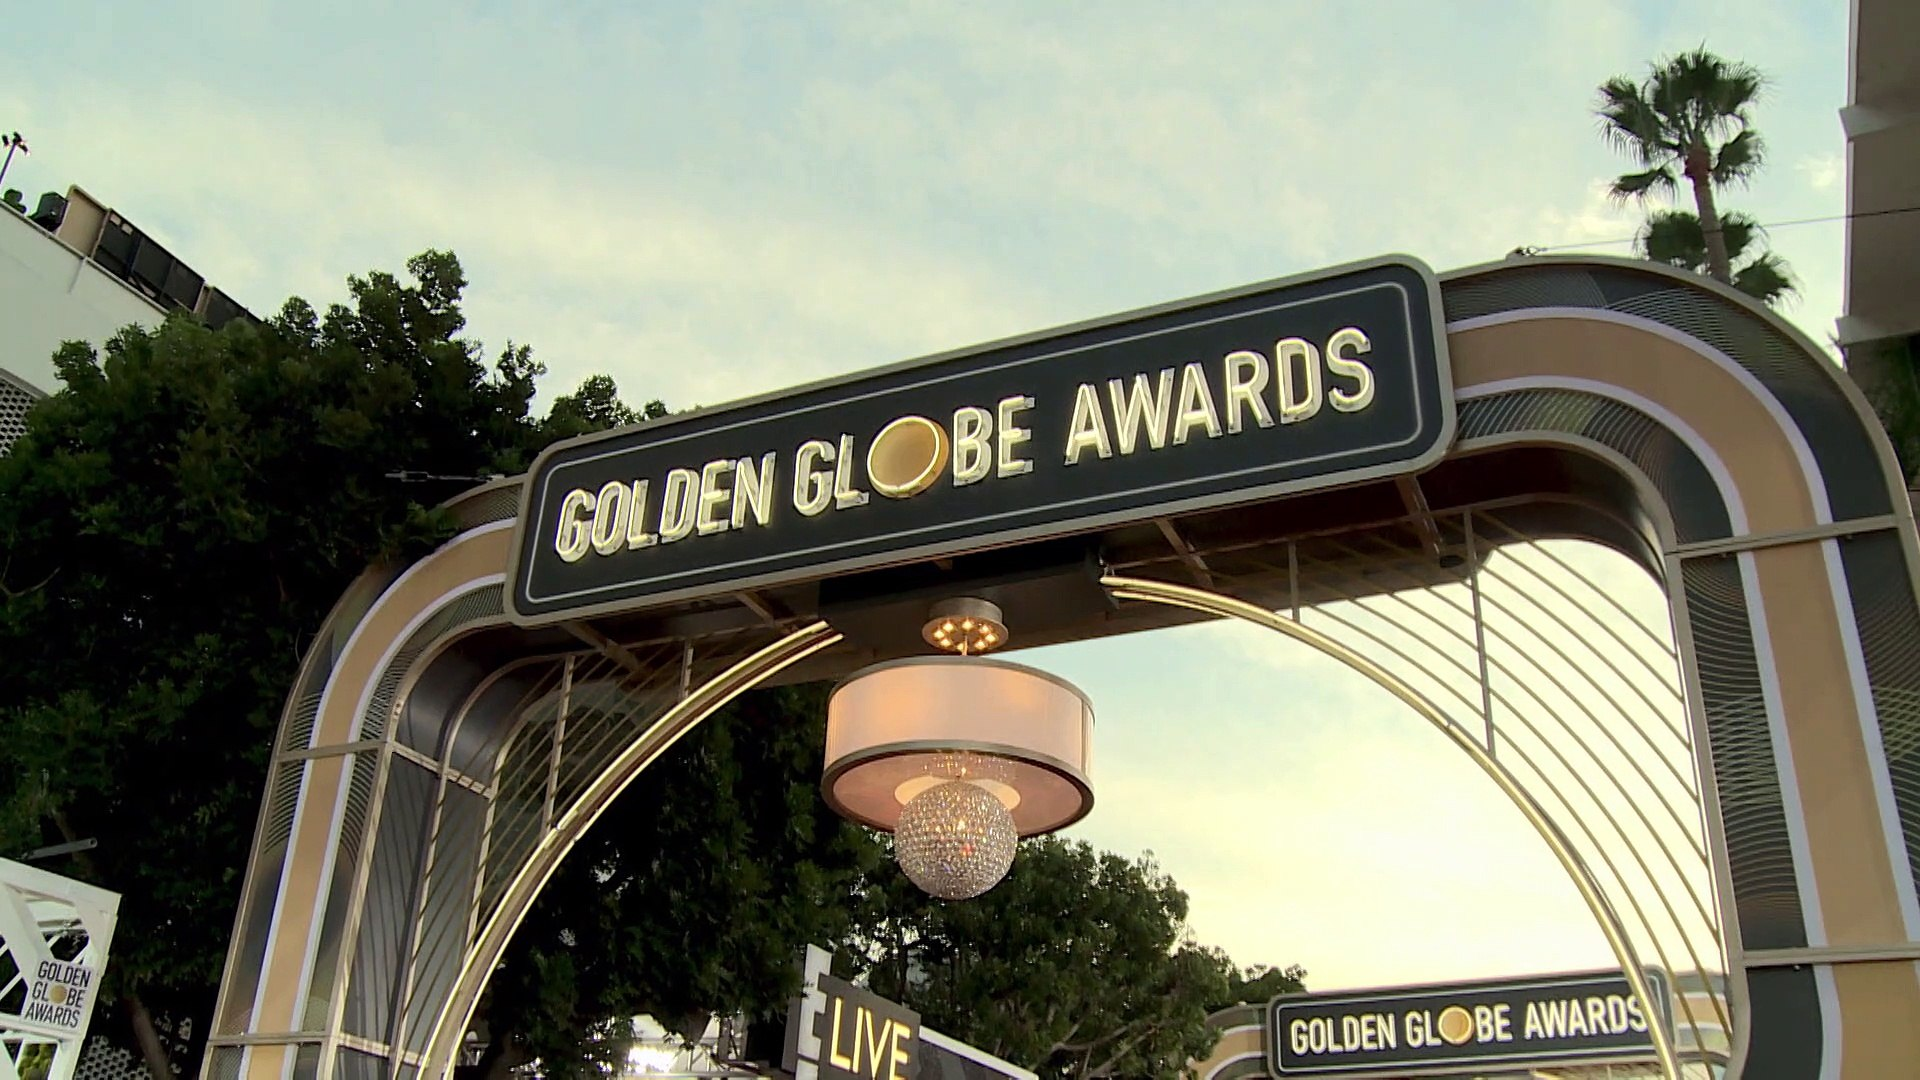 A battle royale shapes up for Best Actress at the 2019 Golden Globes